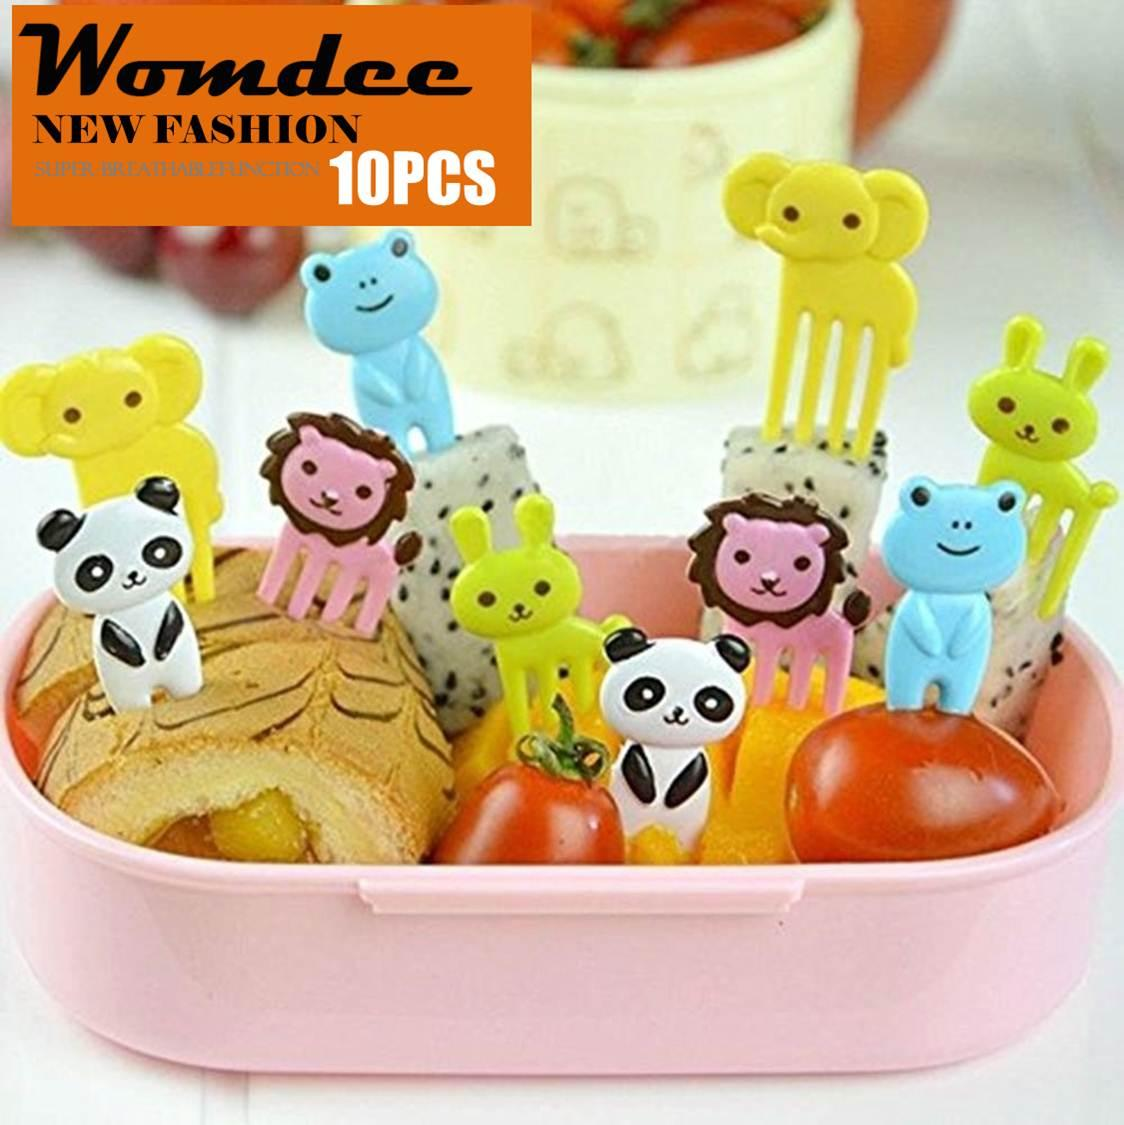 Womdee Animals Food Picks And Forks Lovely Fruit Picks Forks Bento Decoration Box Lunch Box Party Accessories, Random Color - Intl By Womdee.